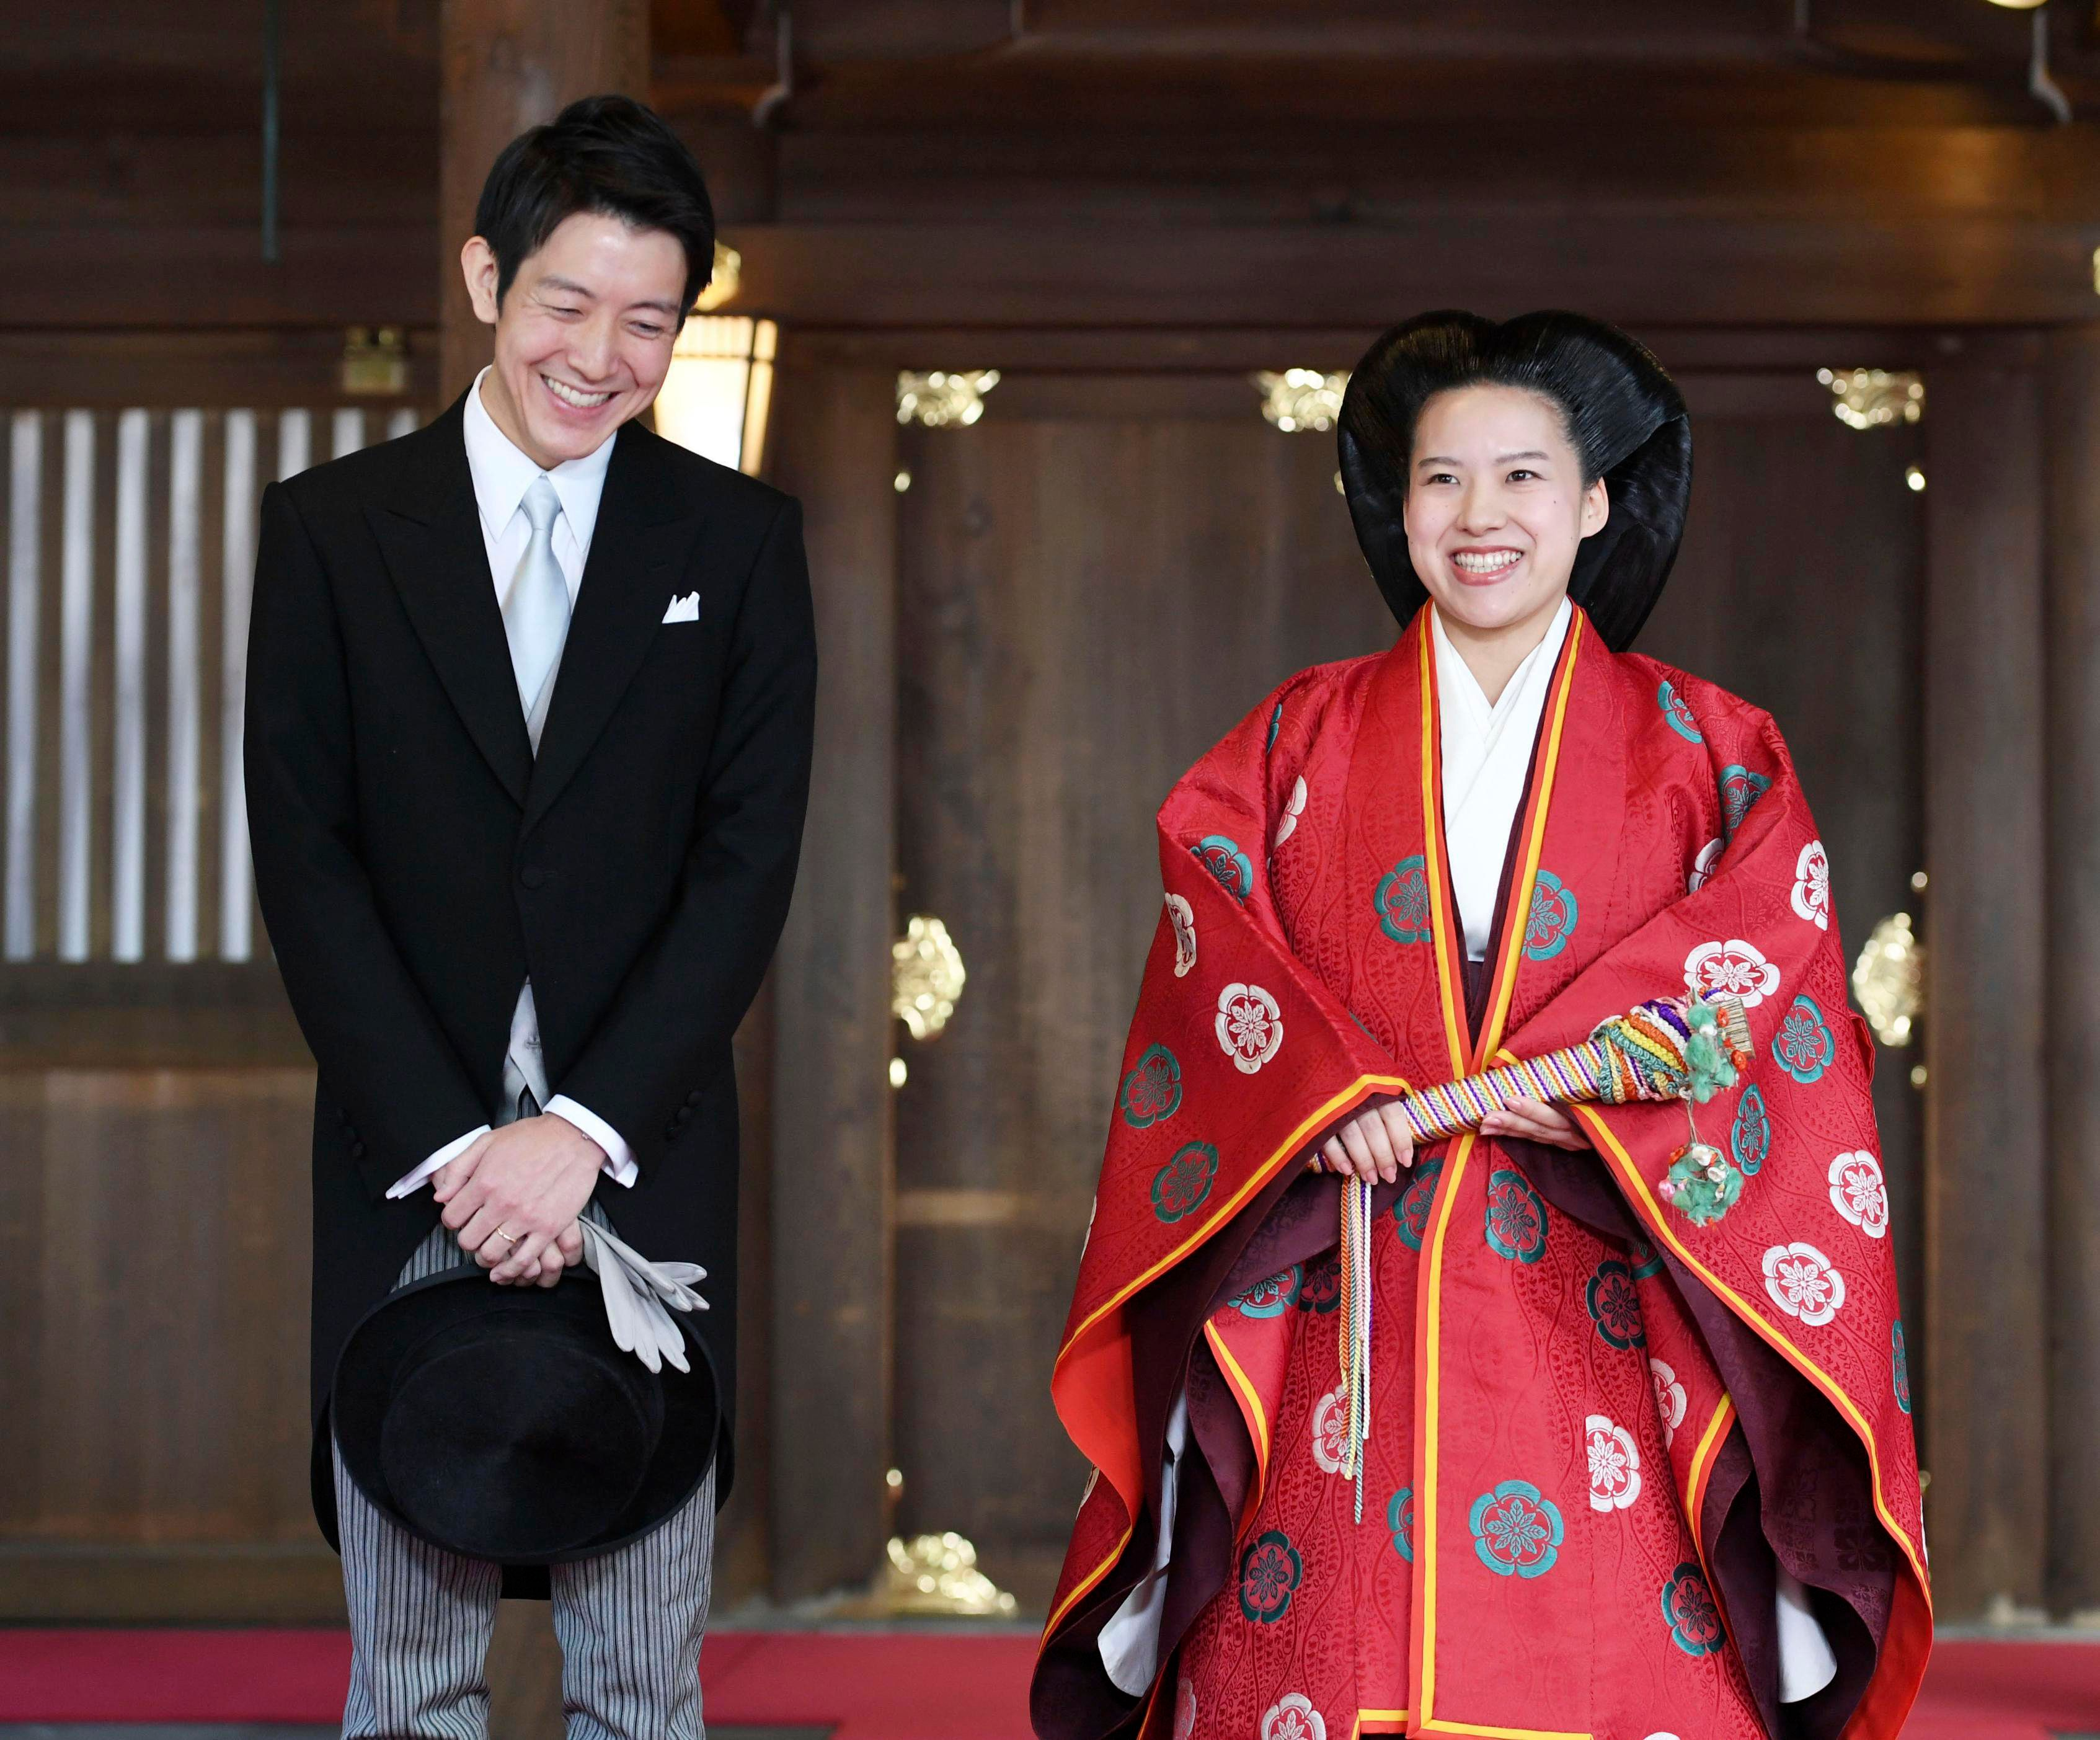 Japanese Princess Ayako, right, dressed in traditional ceremonial robe, and groom Kei Moriya, left, after their wedding ceremony at Meiji Shrine in Tokyo on Monday.